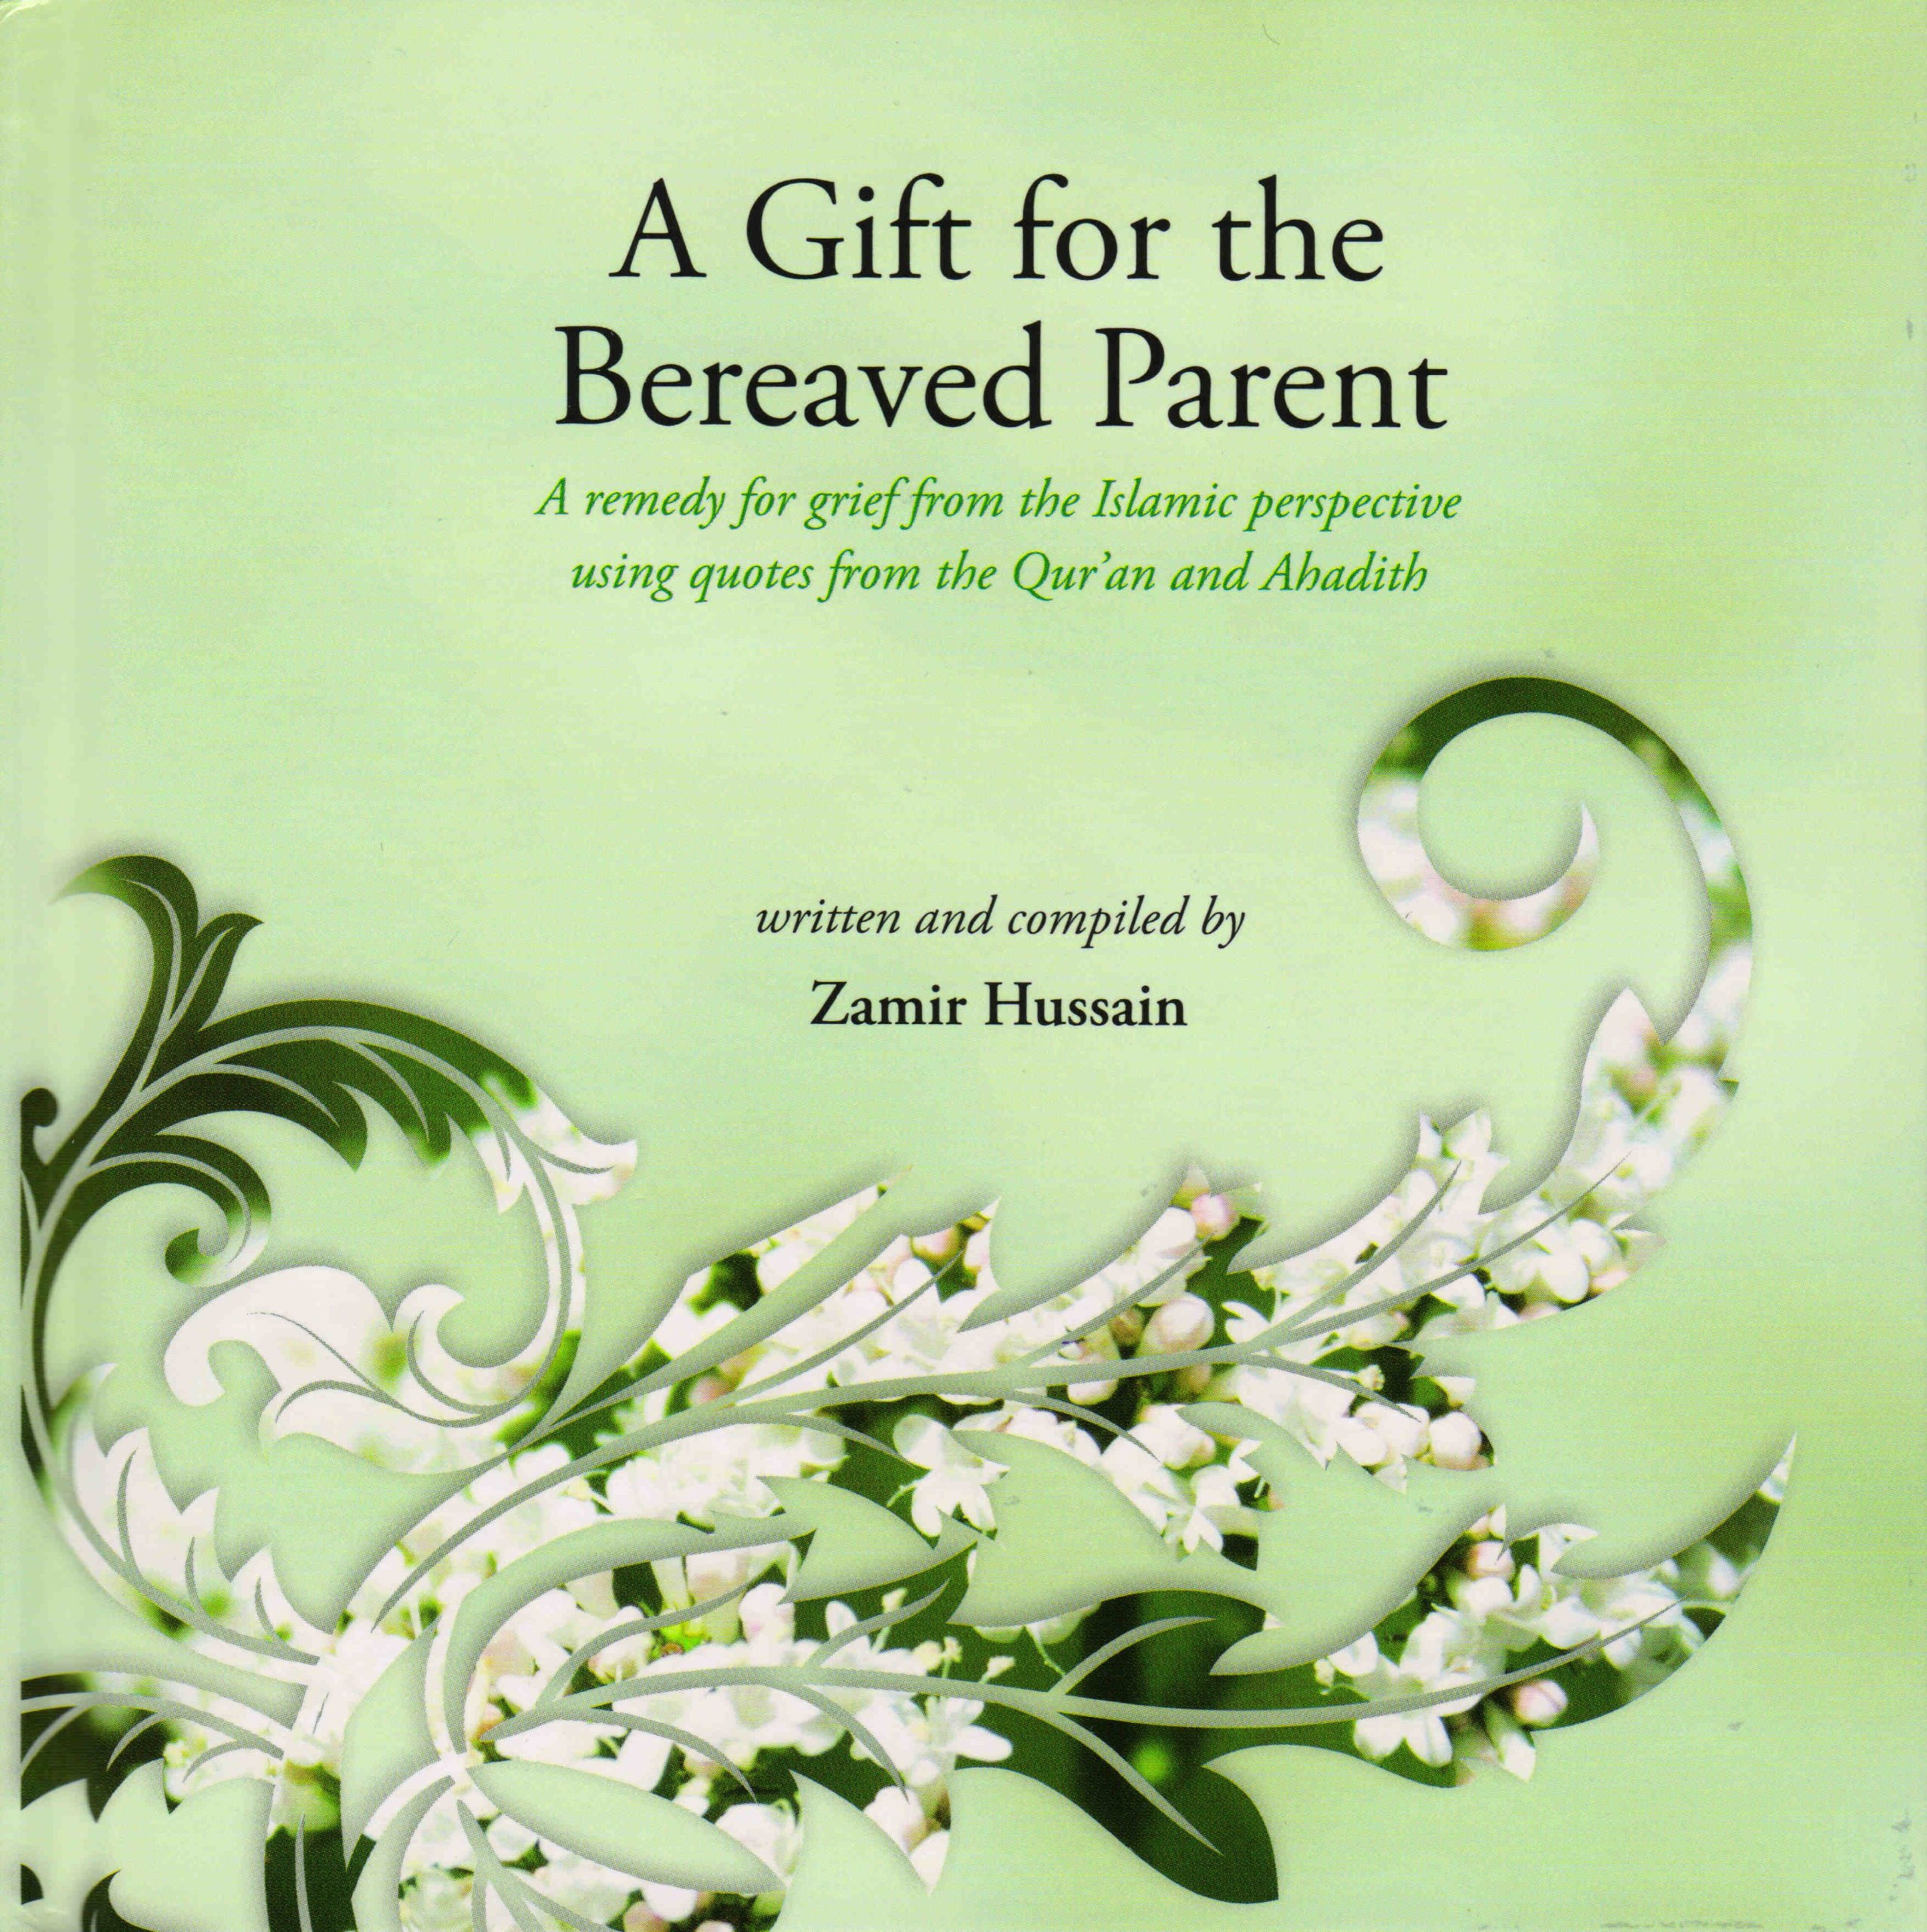 A Gift for the Bereaved Parent: A Remedy for Grief from the Islamic Perspective Using Quotes from the Quran and Hadith (2010-02-08) Hardcover – 2010